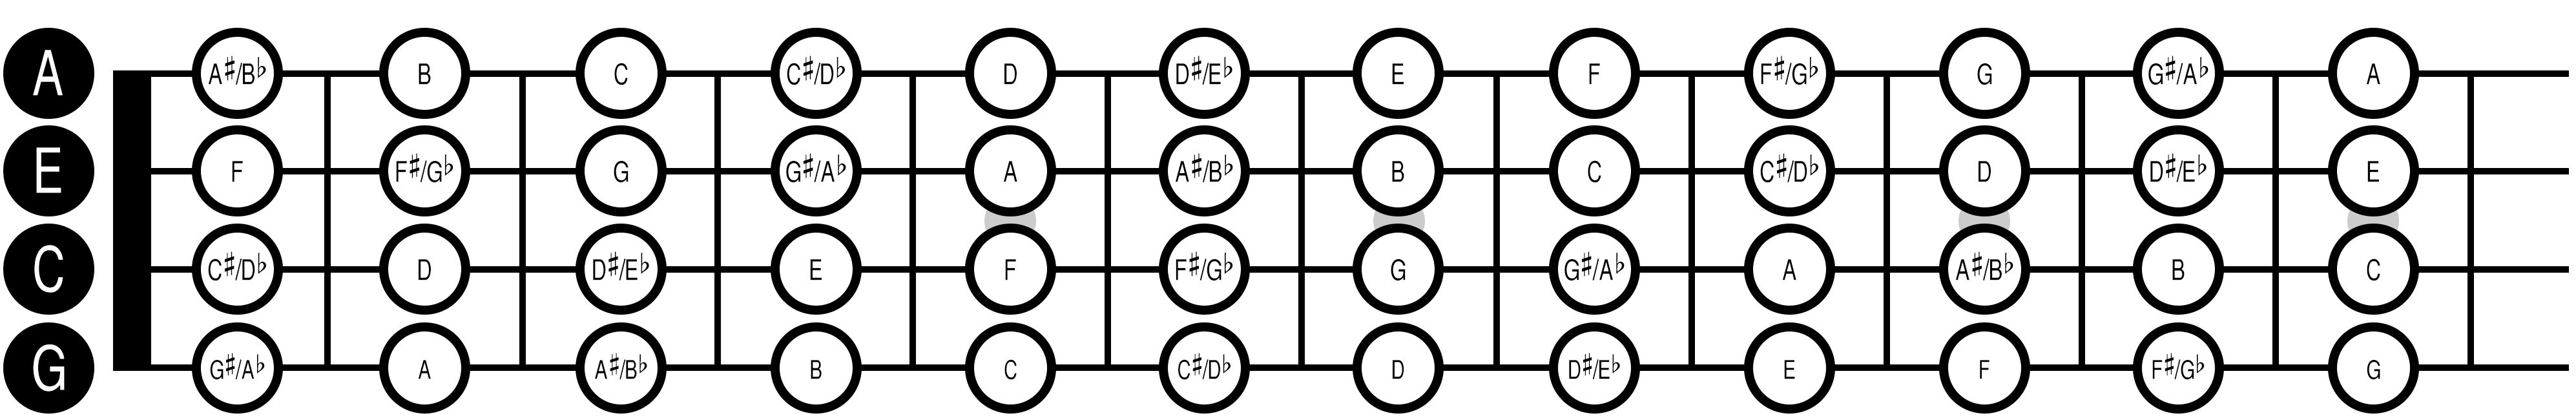 Discover ukulele chord theory making g major triads across the a triad is a three note chord the major triad is made up of the 1st 3rd and 5th scale degrees of a major scale hexwebz Images